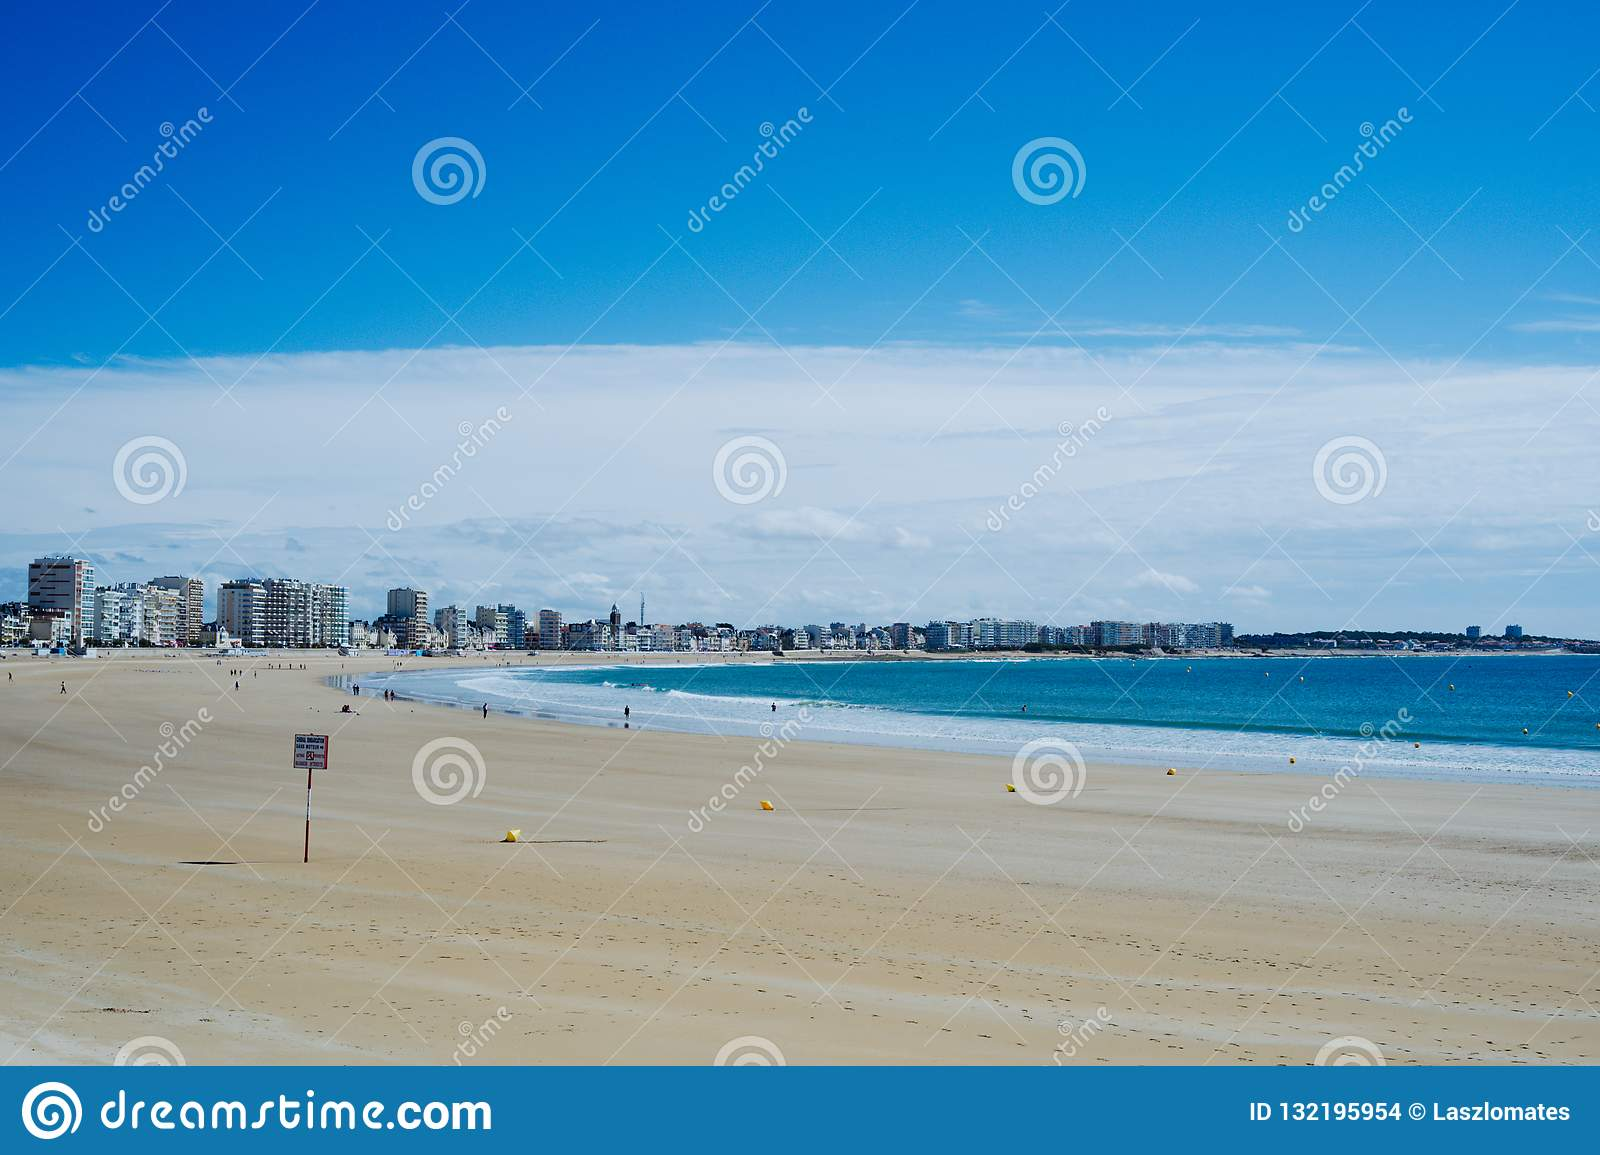 beautiful bay with a stunning blue sea white yellow sand and nice cityscape